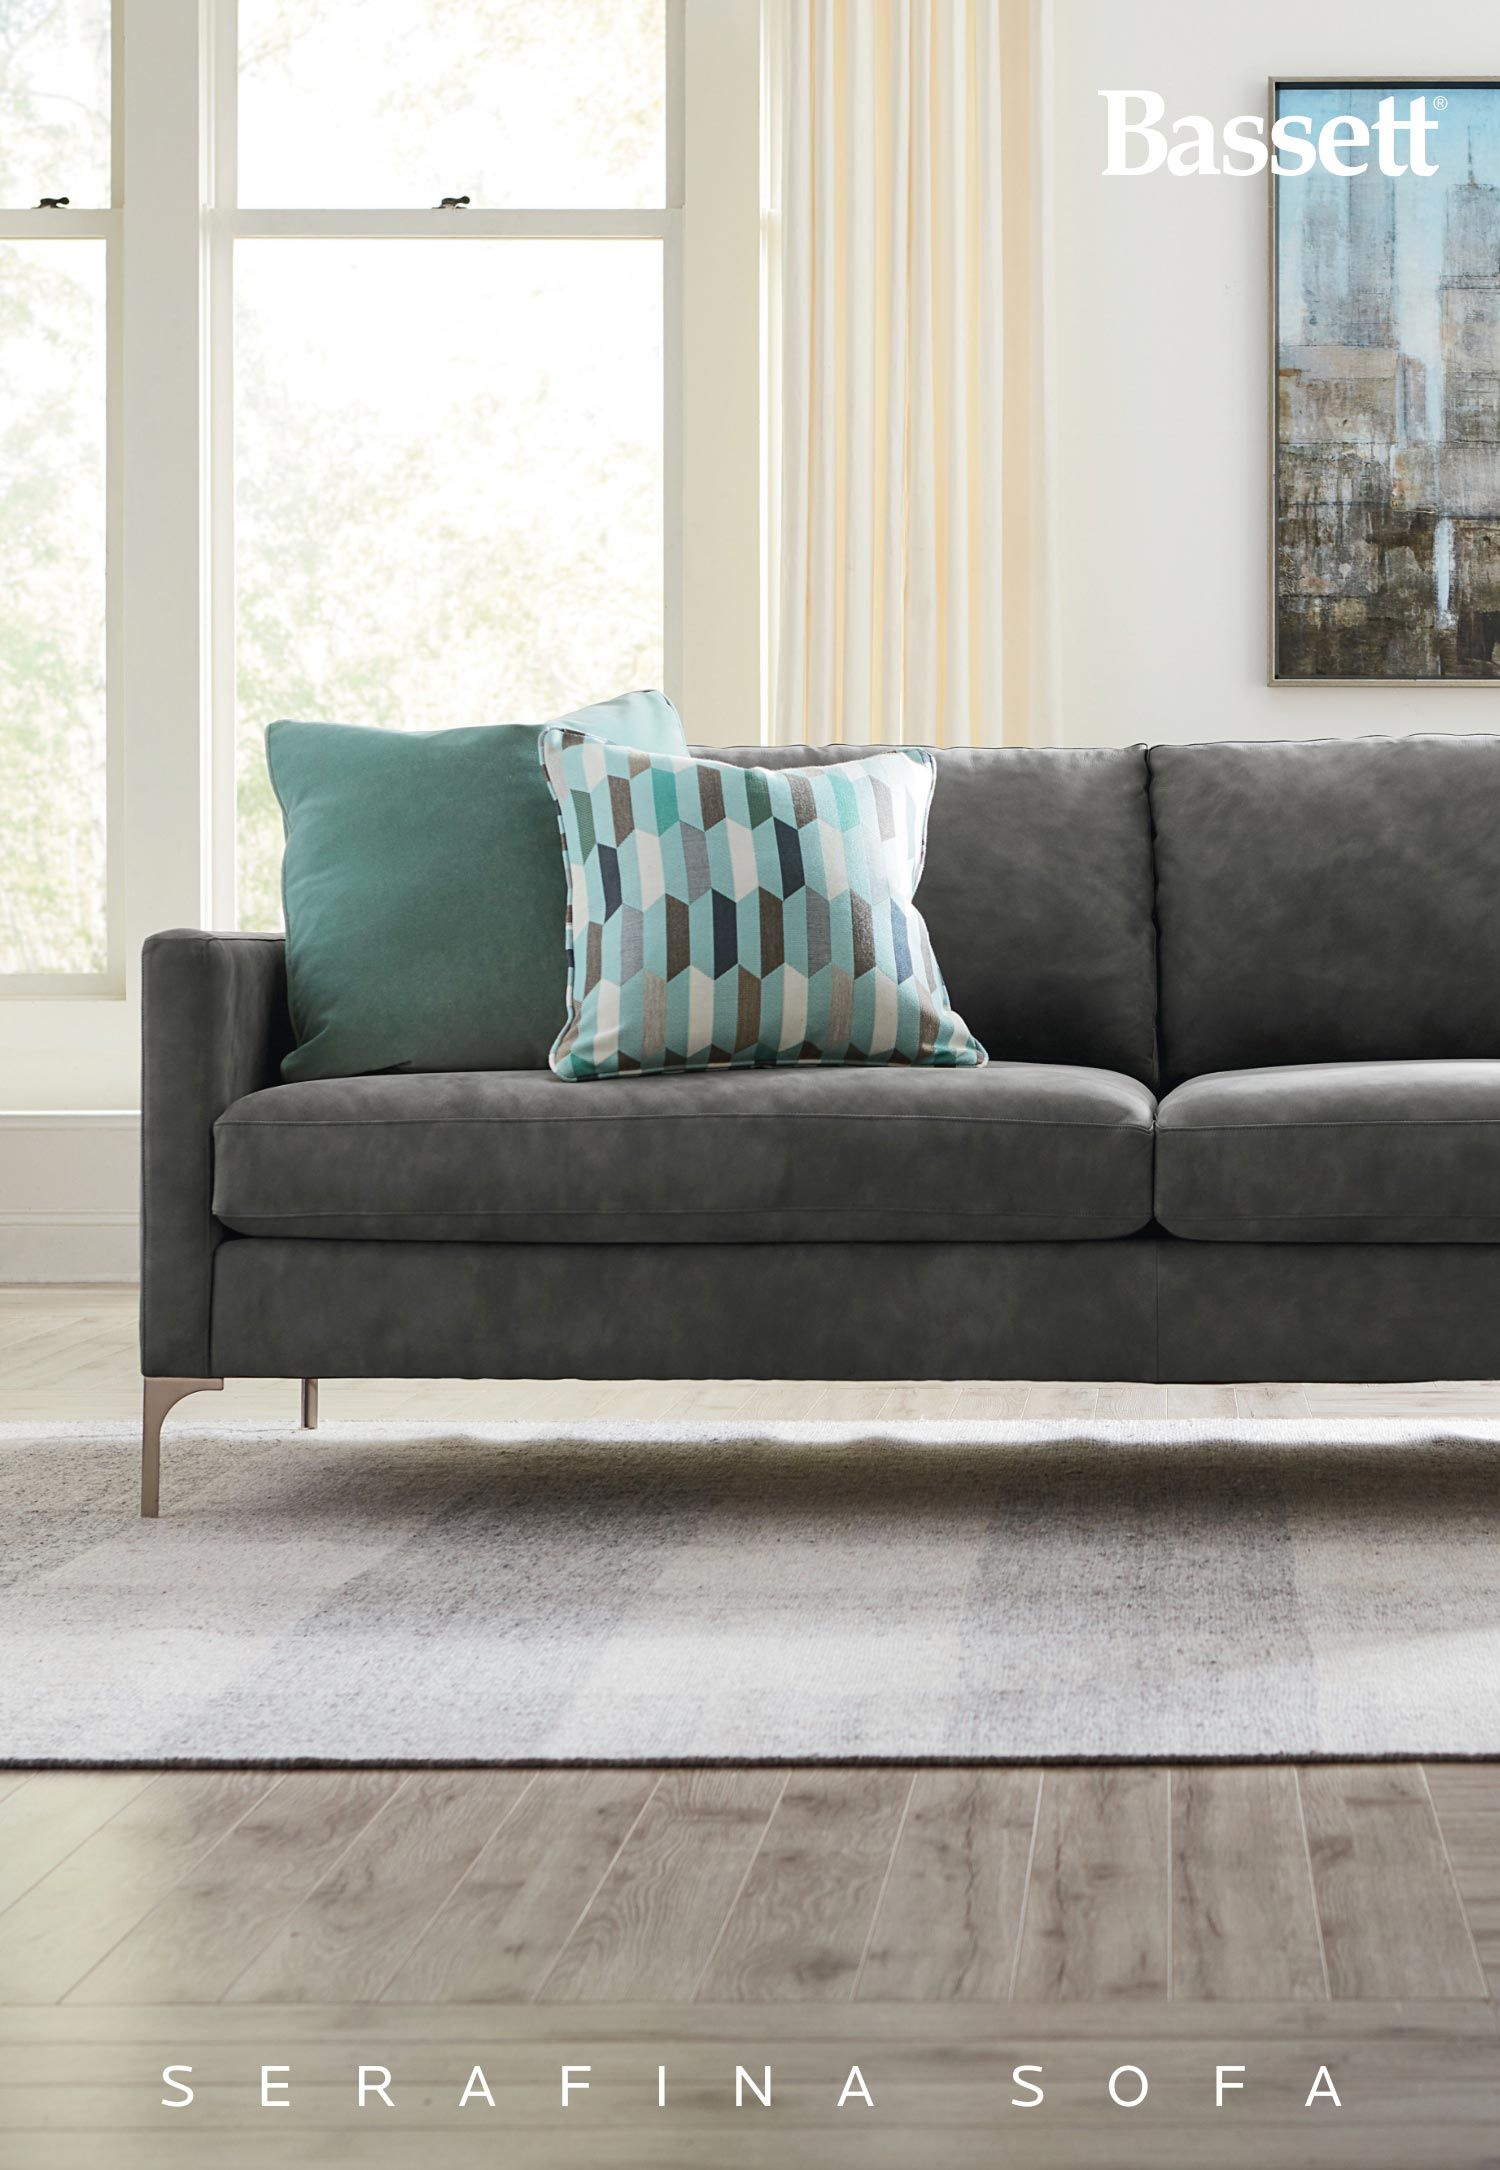 Sleek Thin Track Arm Modern Styled Sectional And Sofa Grouping Makes It Comfortable To Bring Glamour Simple Clean Lines Everyday Living